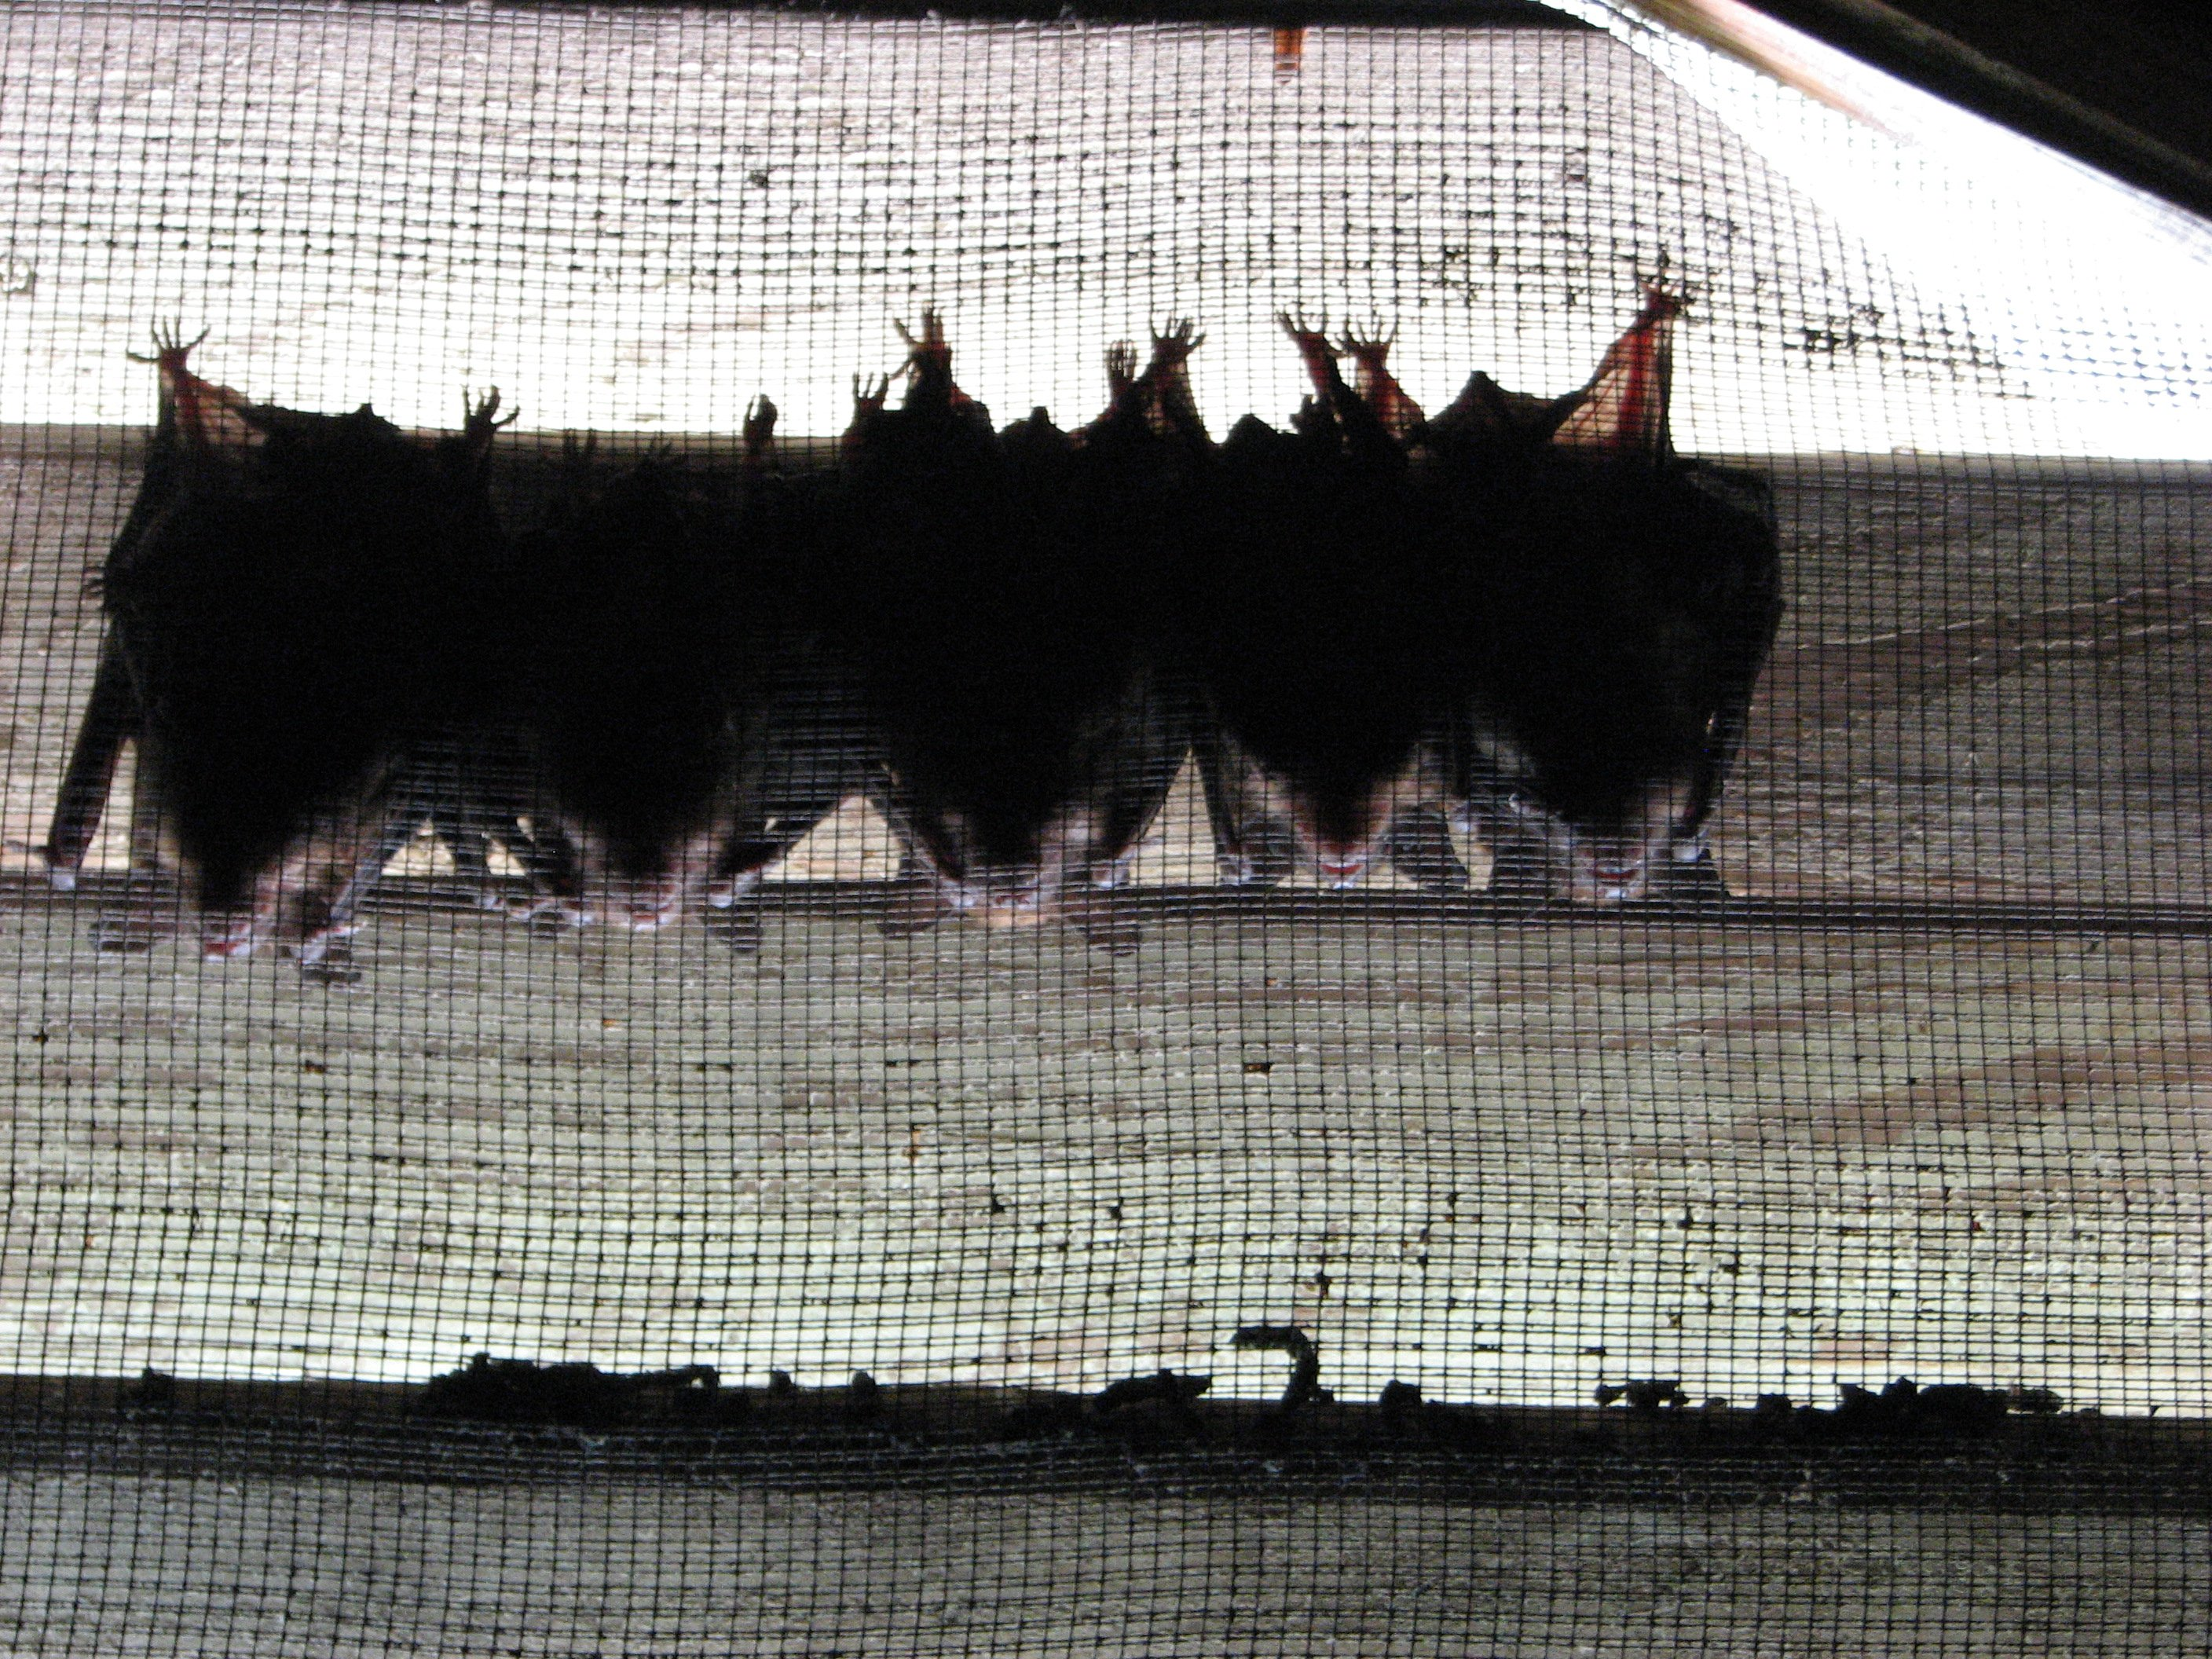 Bats in the gable vent